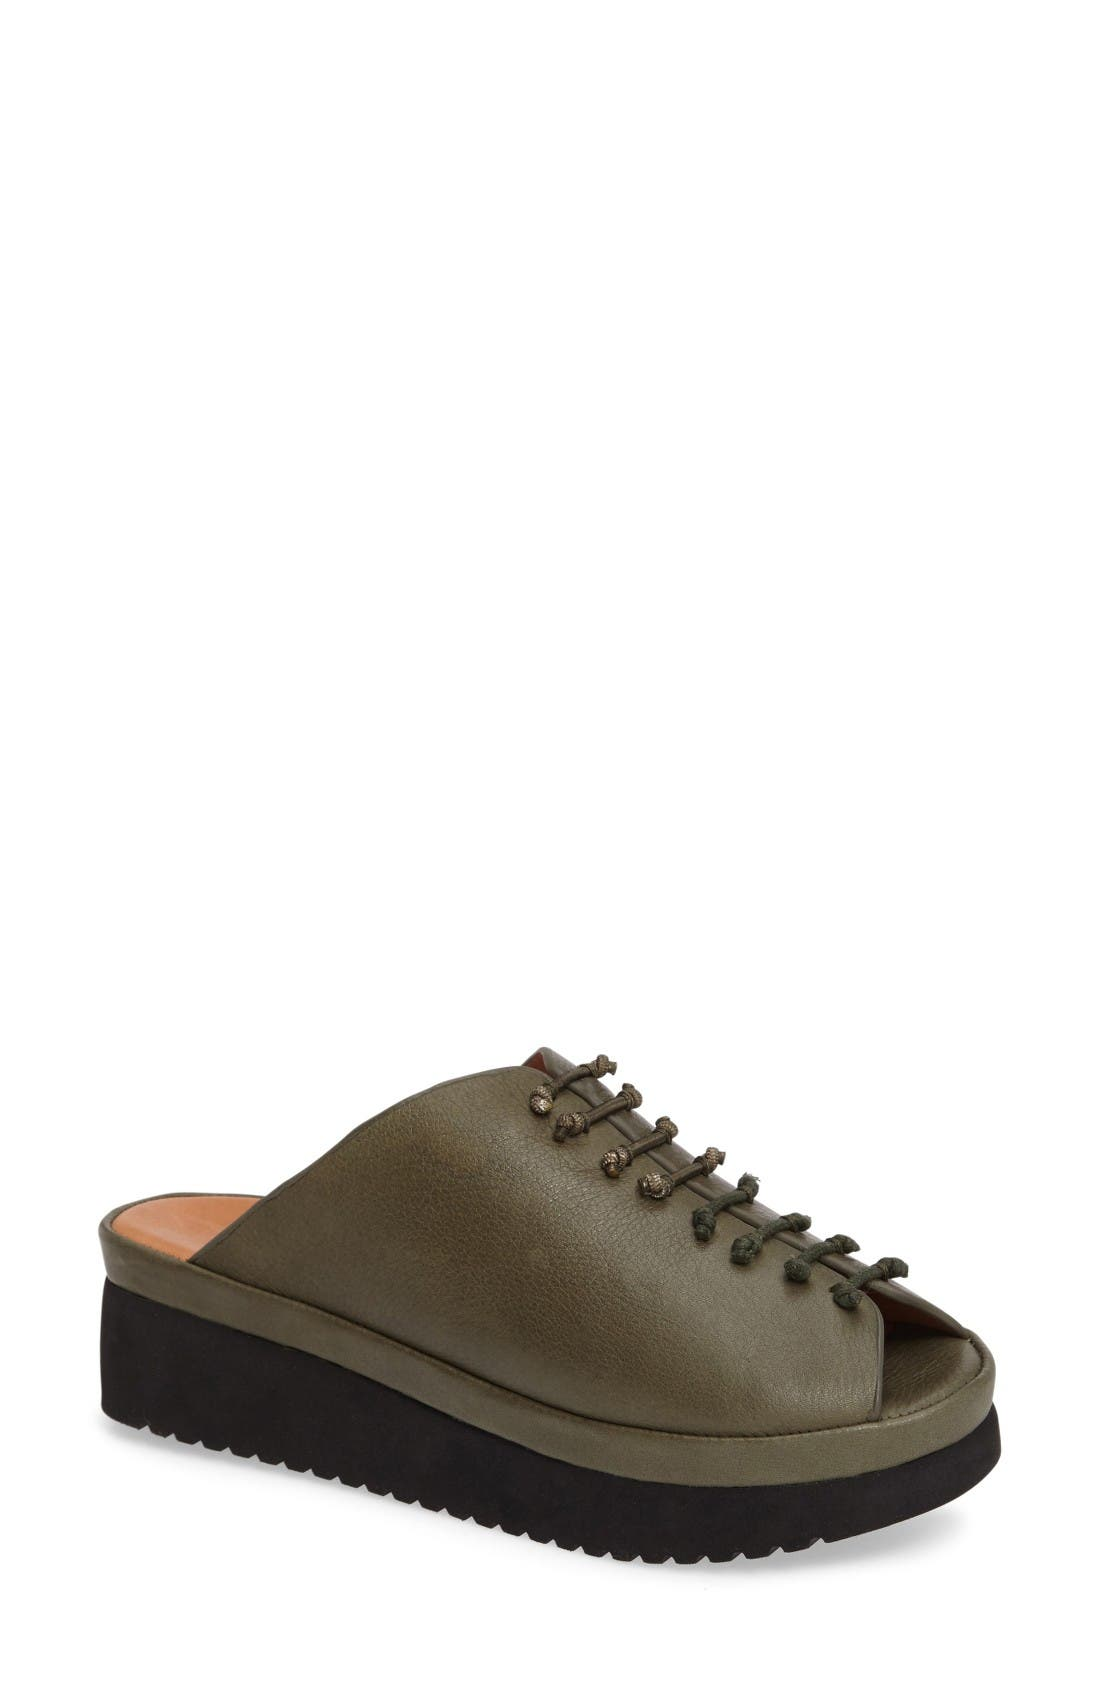 Arienne Wedge Platform Sandal,                             Main thumbnail 1, color,                             Olive Leather